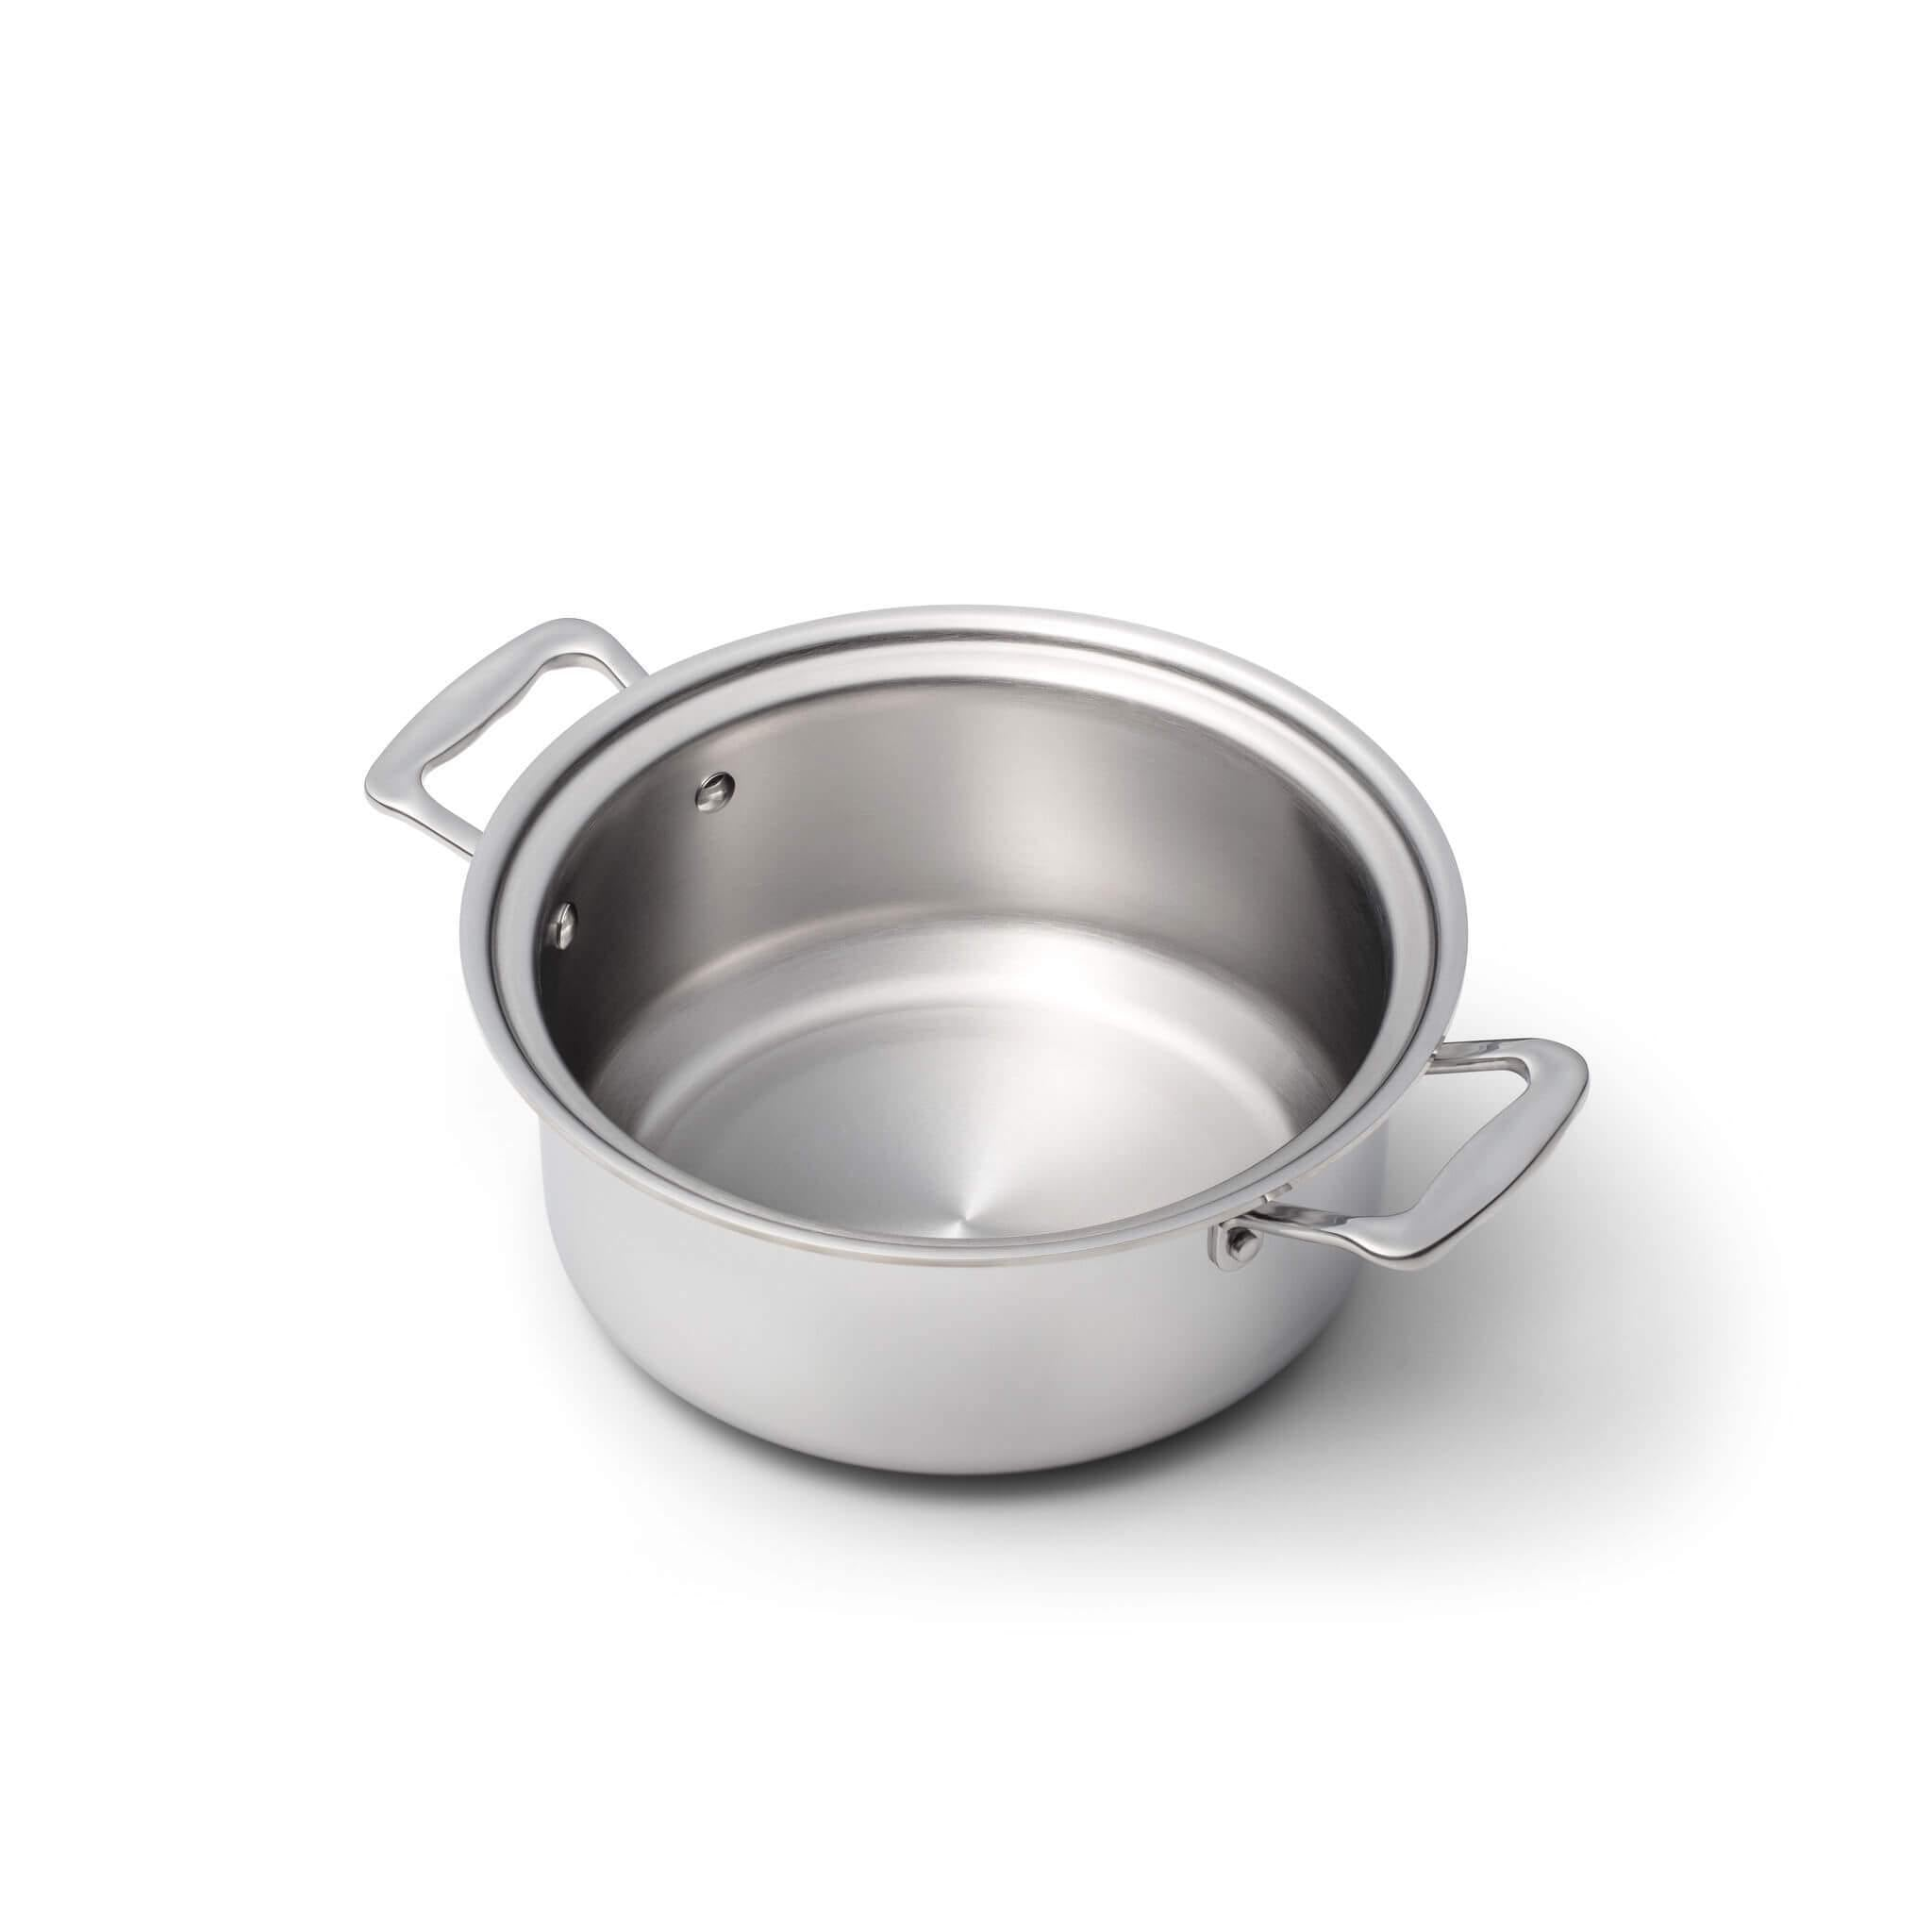 4 Quart Stock Pot with Cover